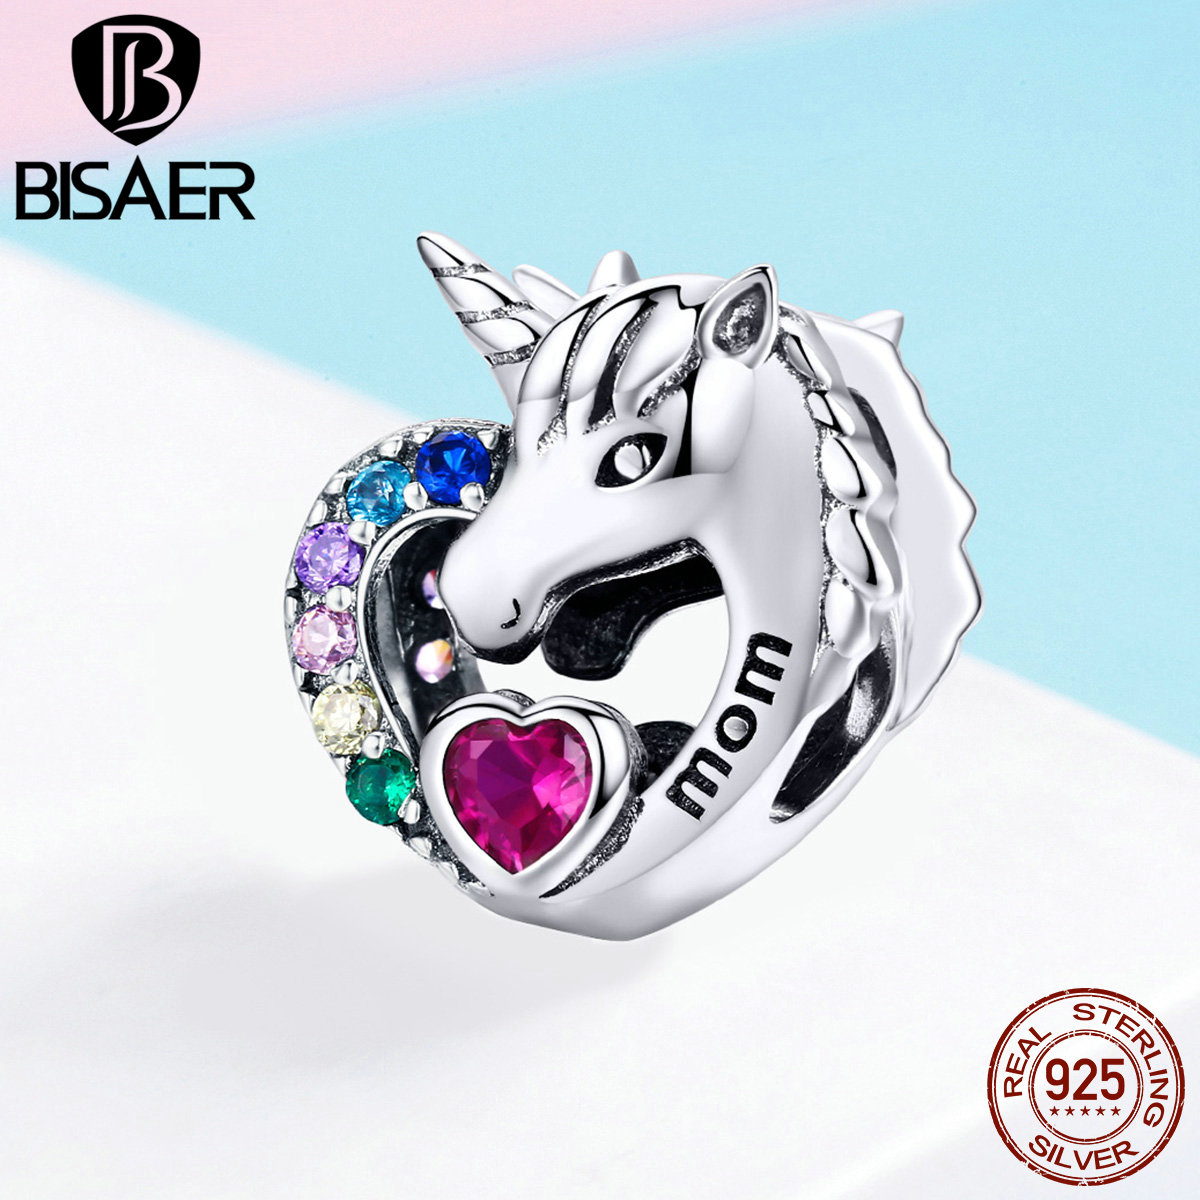 BISAER 925 Sterling Silver Licorne Unicorn Beads Pure Love Animal Love Heart Charms Fit Mom Bracelets Silver Jewelry ECC1160